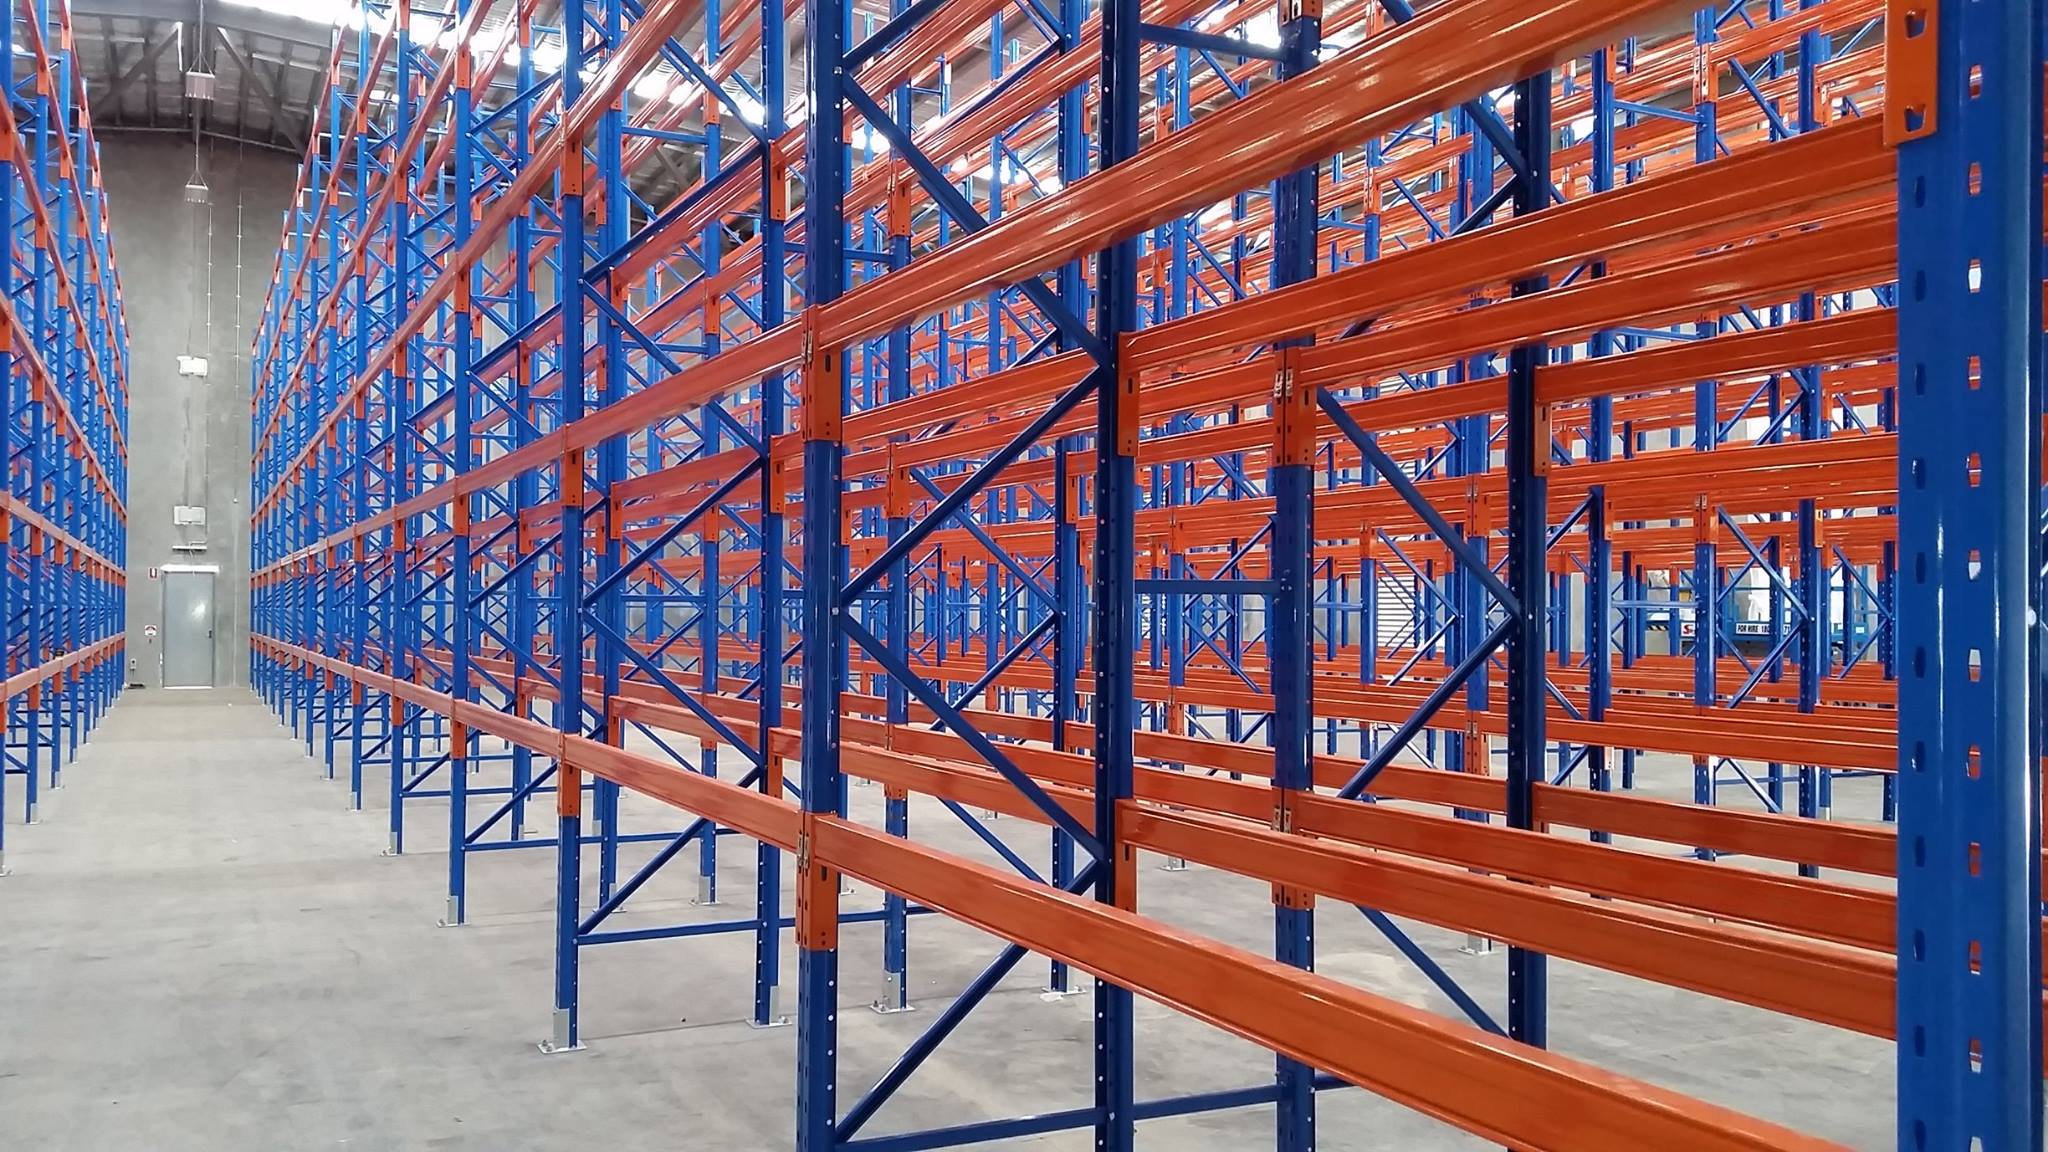 empty red and blue goods warehouse shelf